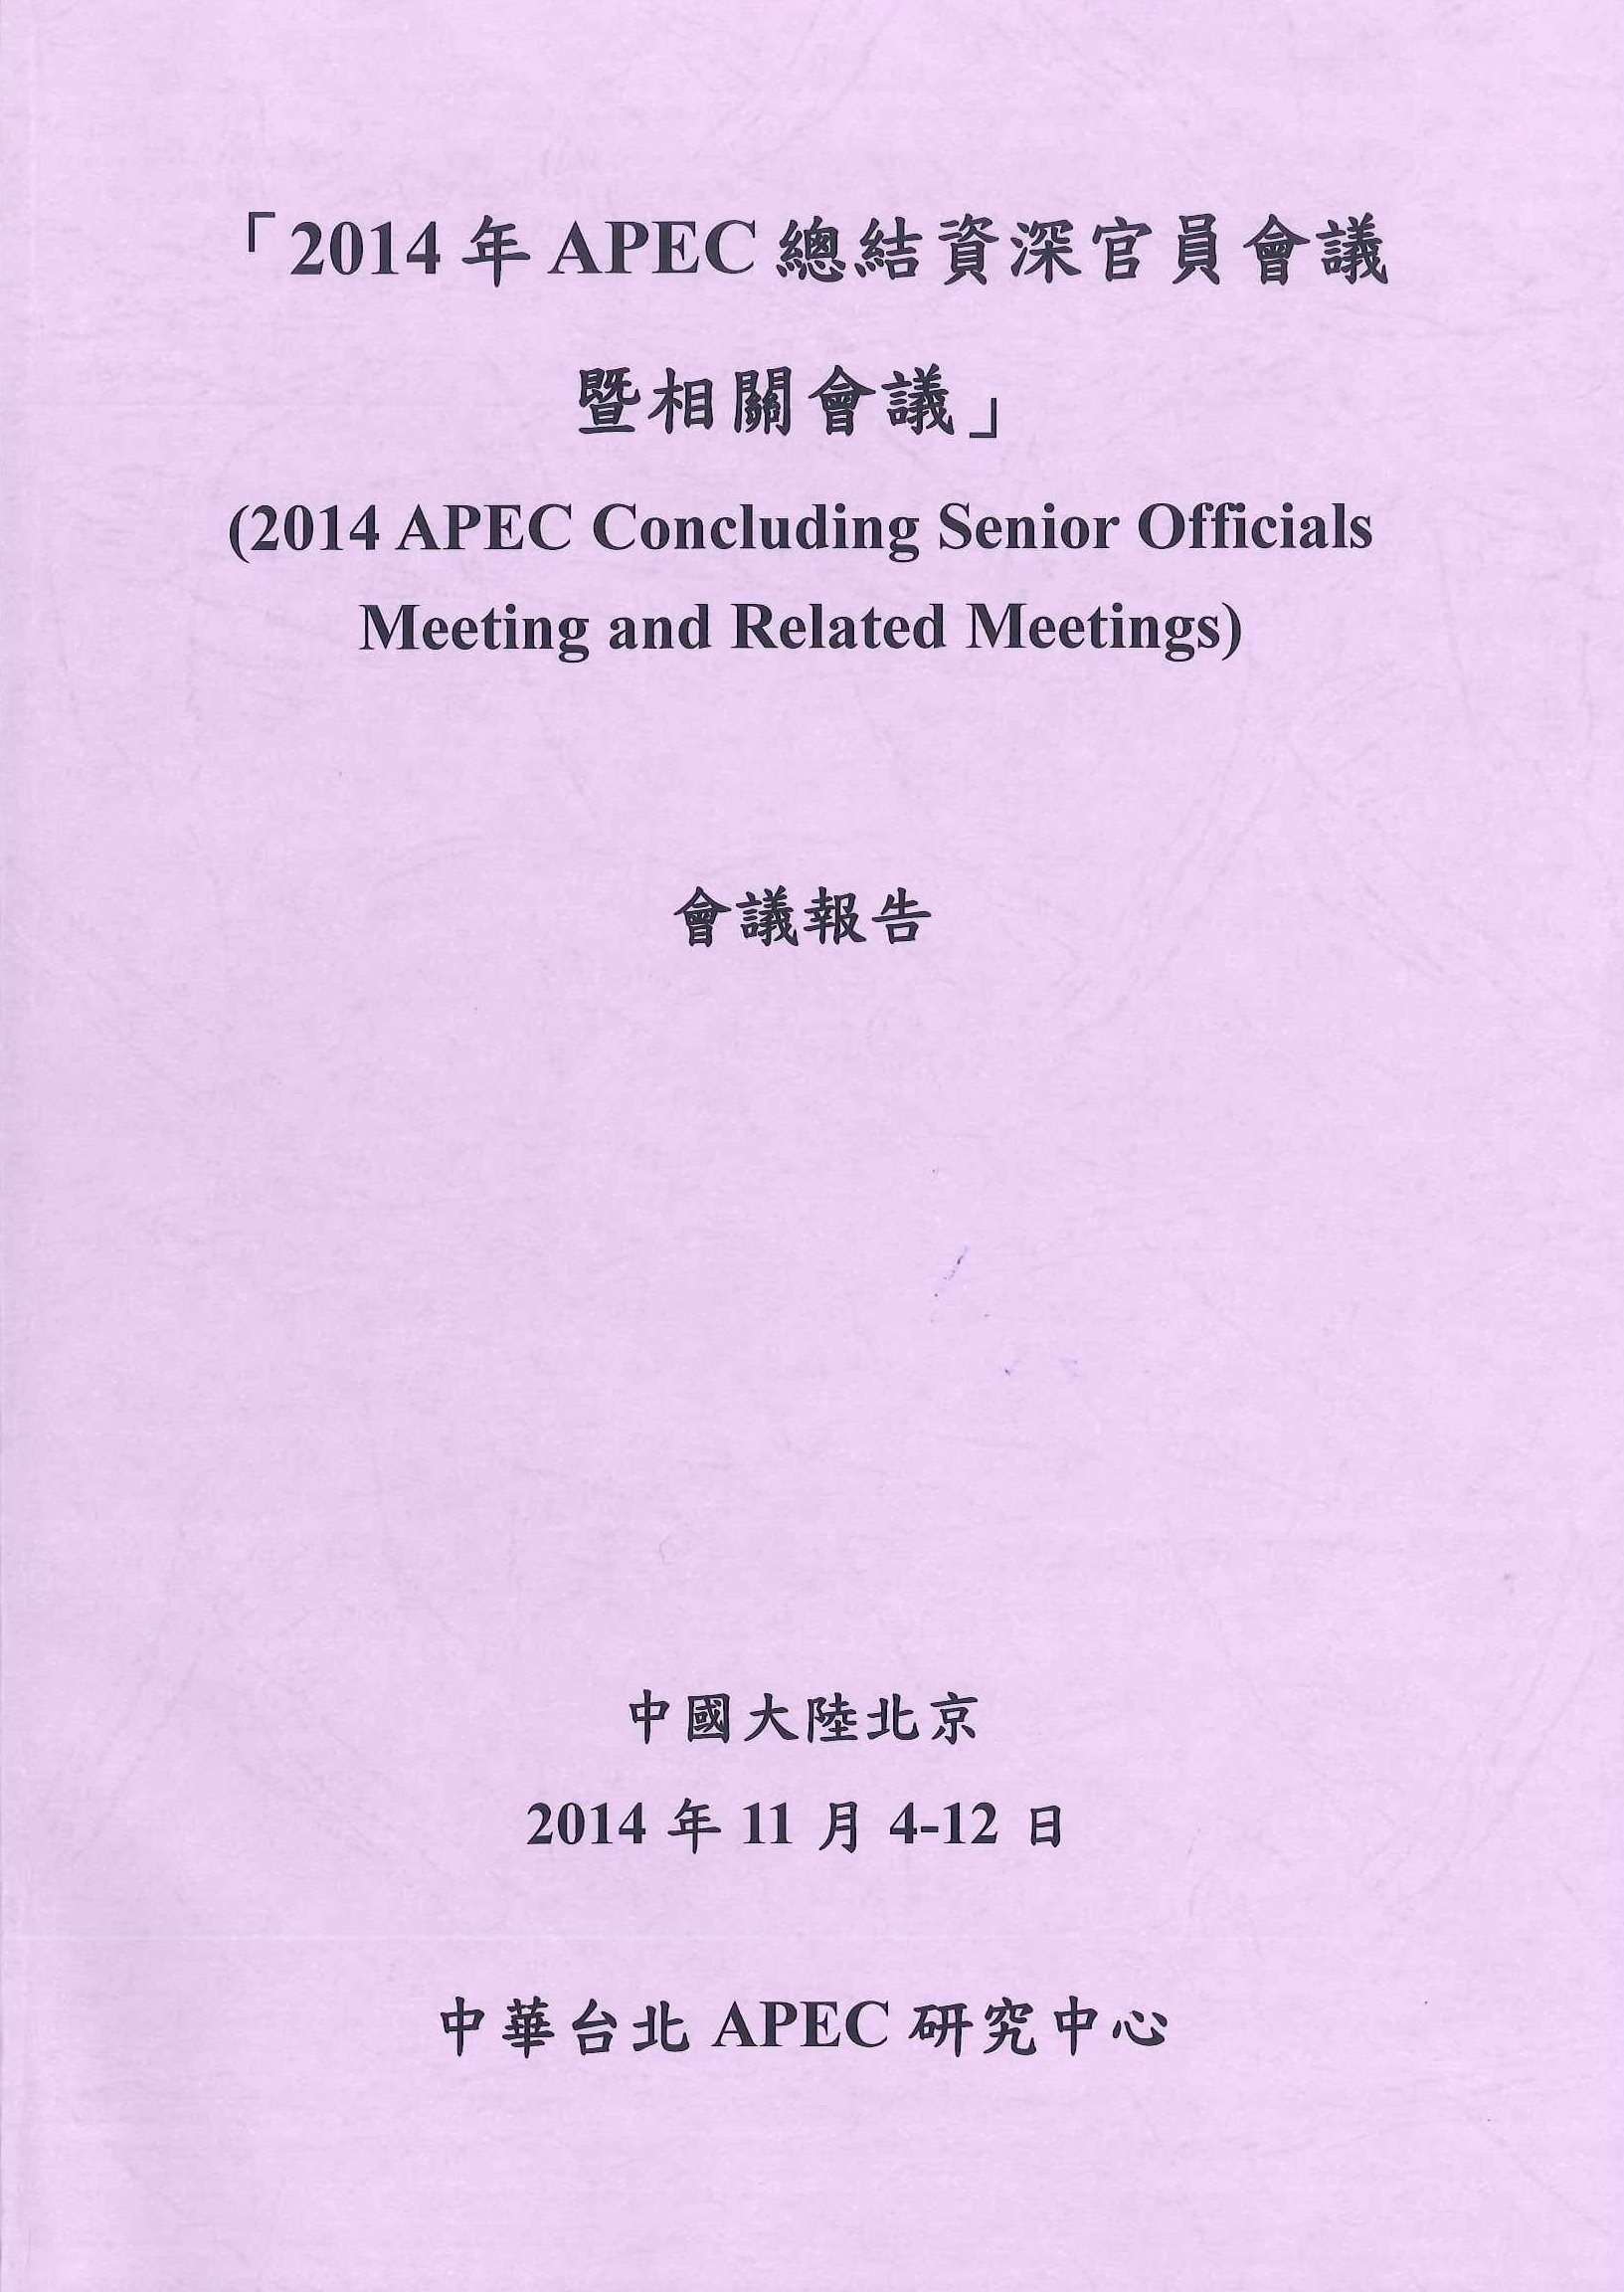 2014年APEC總結資深官員會議暨相關會議會議報告=2014 APEC concluding senior officials meeting and related meetings